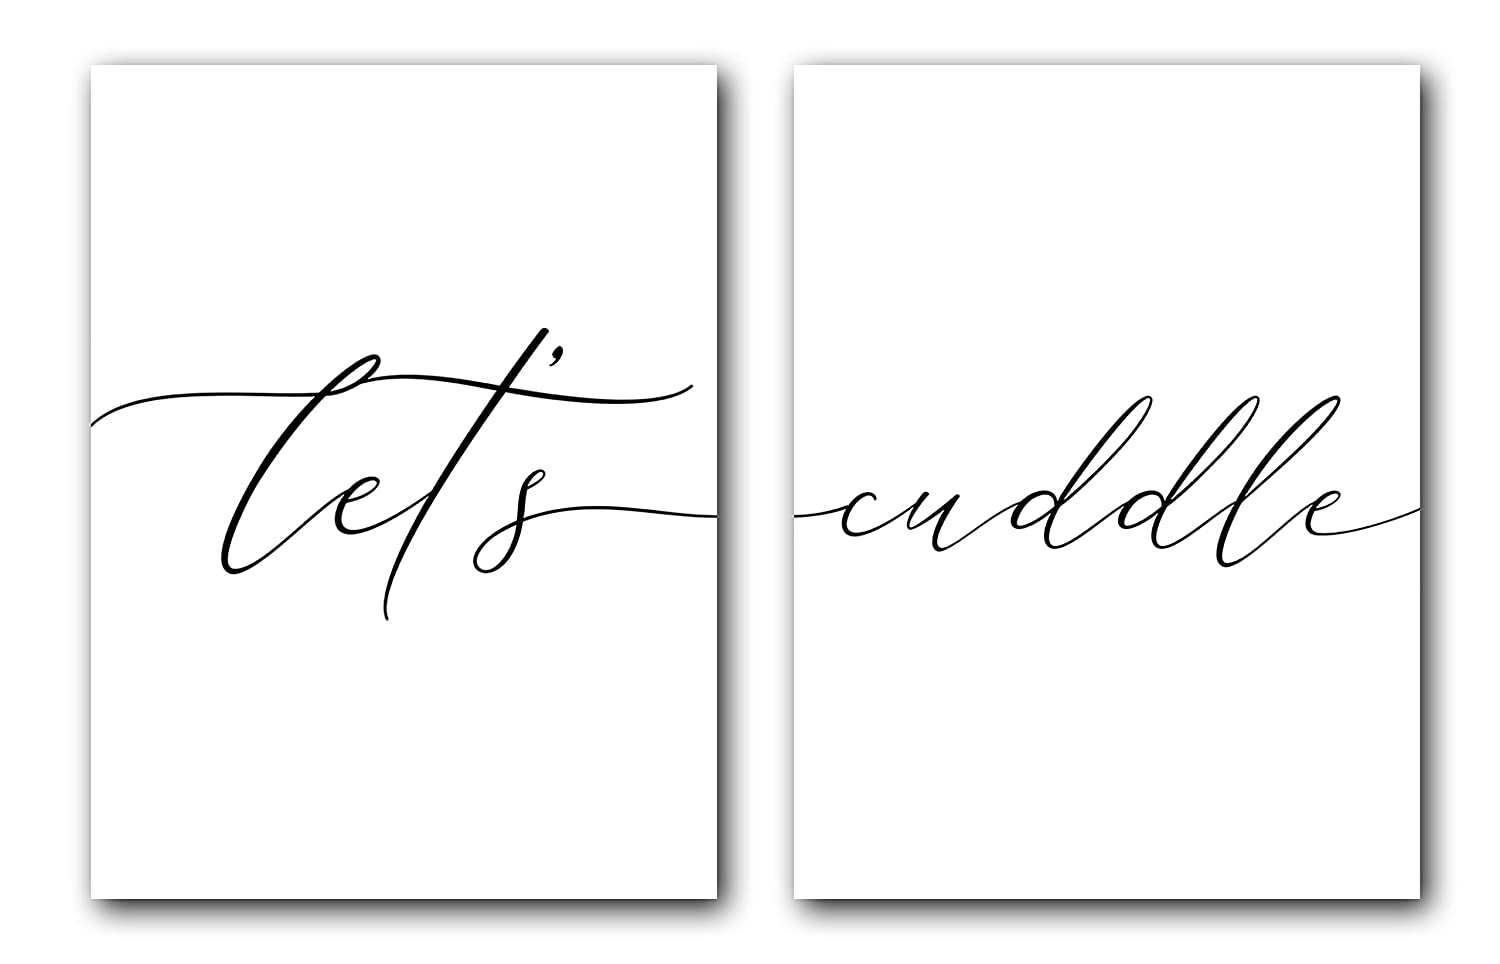 Let's Cuddle, Unframed, 18 x 24 Inches, Set of 2, Posters, Minimalist Art Typography Art, Bedroom Wall Art, Romantic Wall Decor